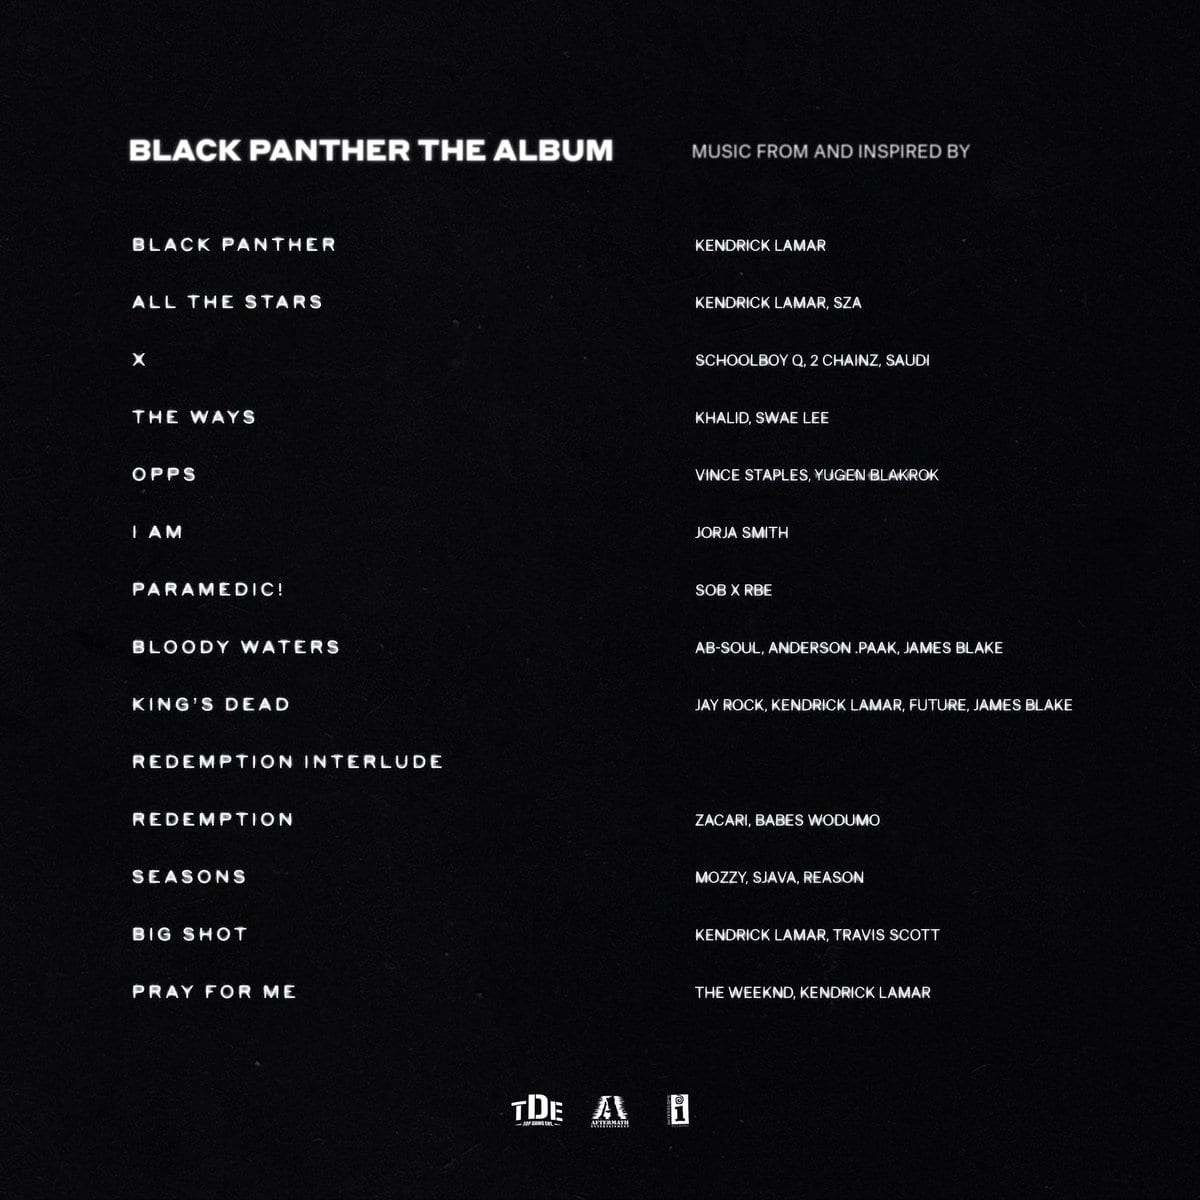 Kendrick Lamar & Various Artists - Black Panther [OST ALBUM], Kendrick Lamar, Various Artists, Black Panther, OST, ALBUM, download, cdq, 320kbps, audiomack, dopefile, datafilehost, toxicwap, fakaza, mp3goo, zip, alac, zippy, album, descarger, gratis, telecharger, baixer, EP, rar, torrent, sharebeast